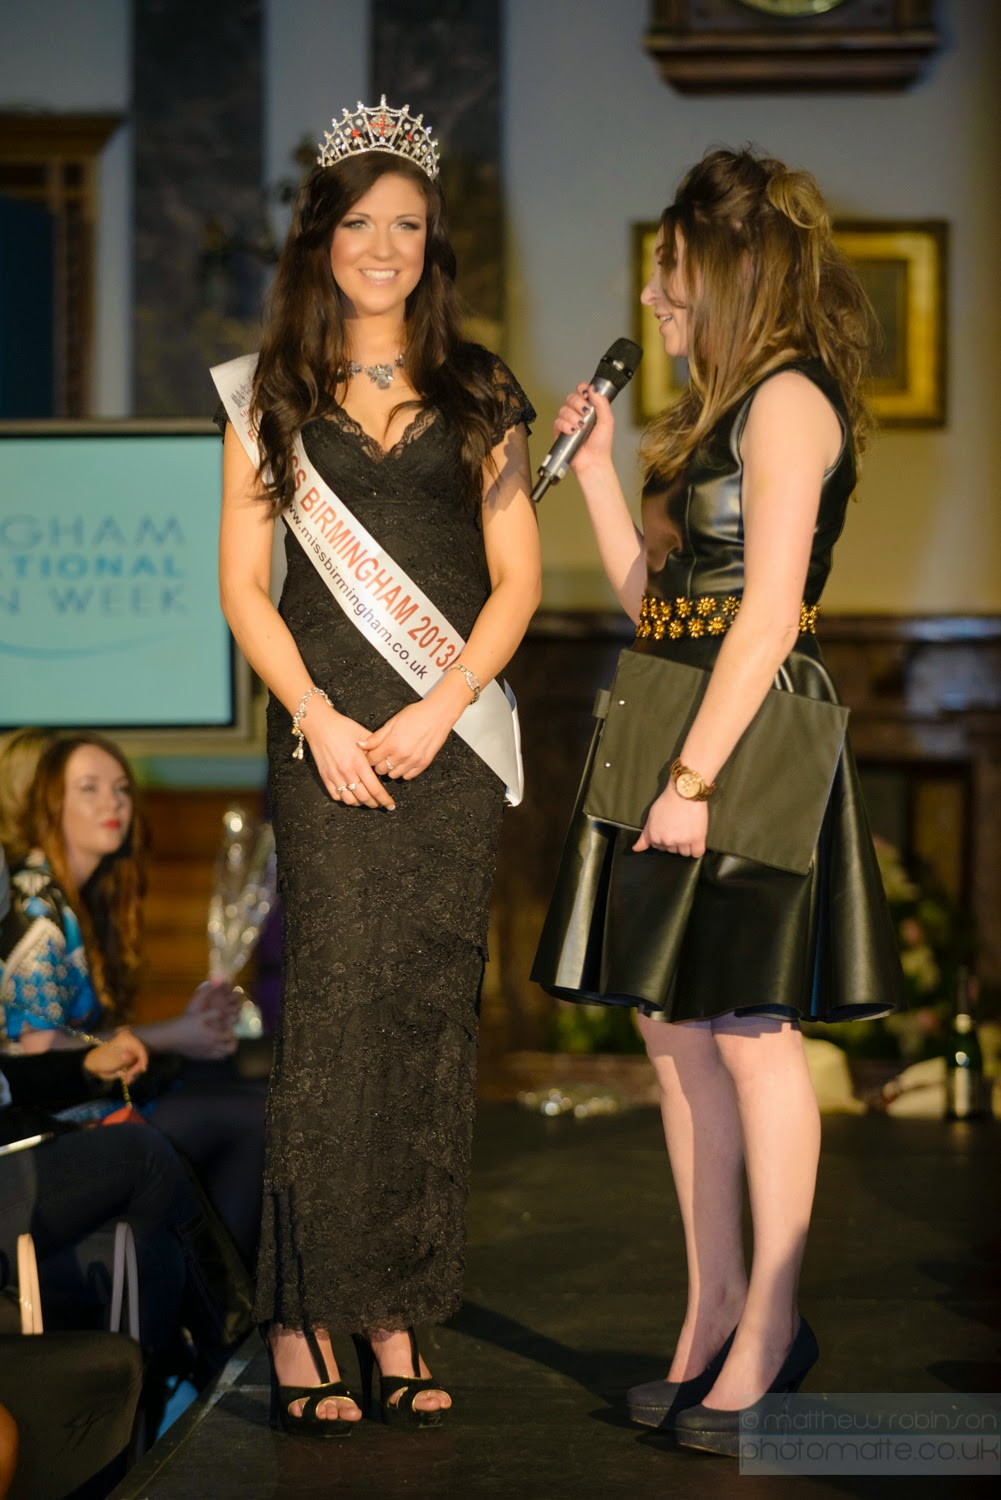 Presenter Frankie McCamley with Miss Birmingham Rachael Barker